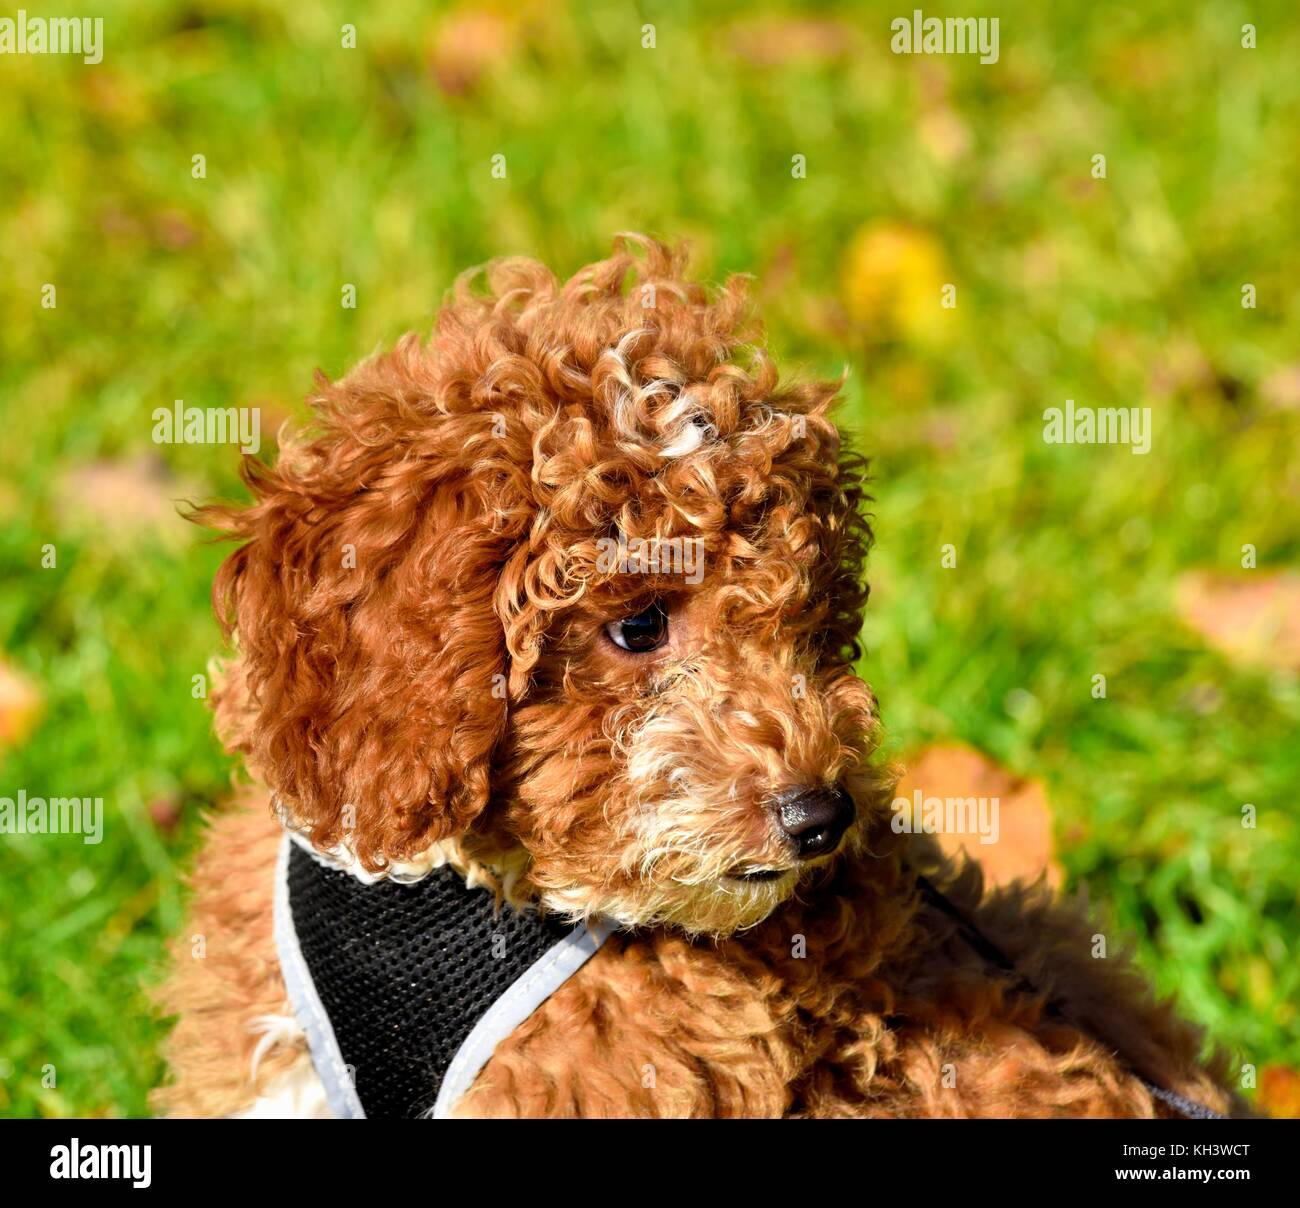 Red Cockapoo Puppy Dog Stock Photo Alamy